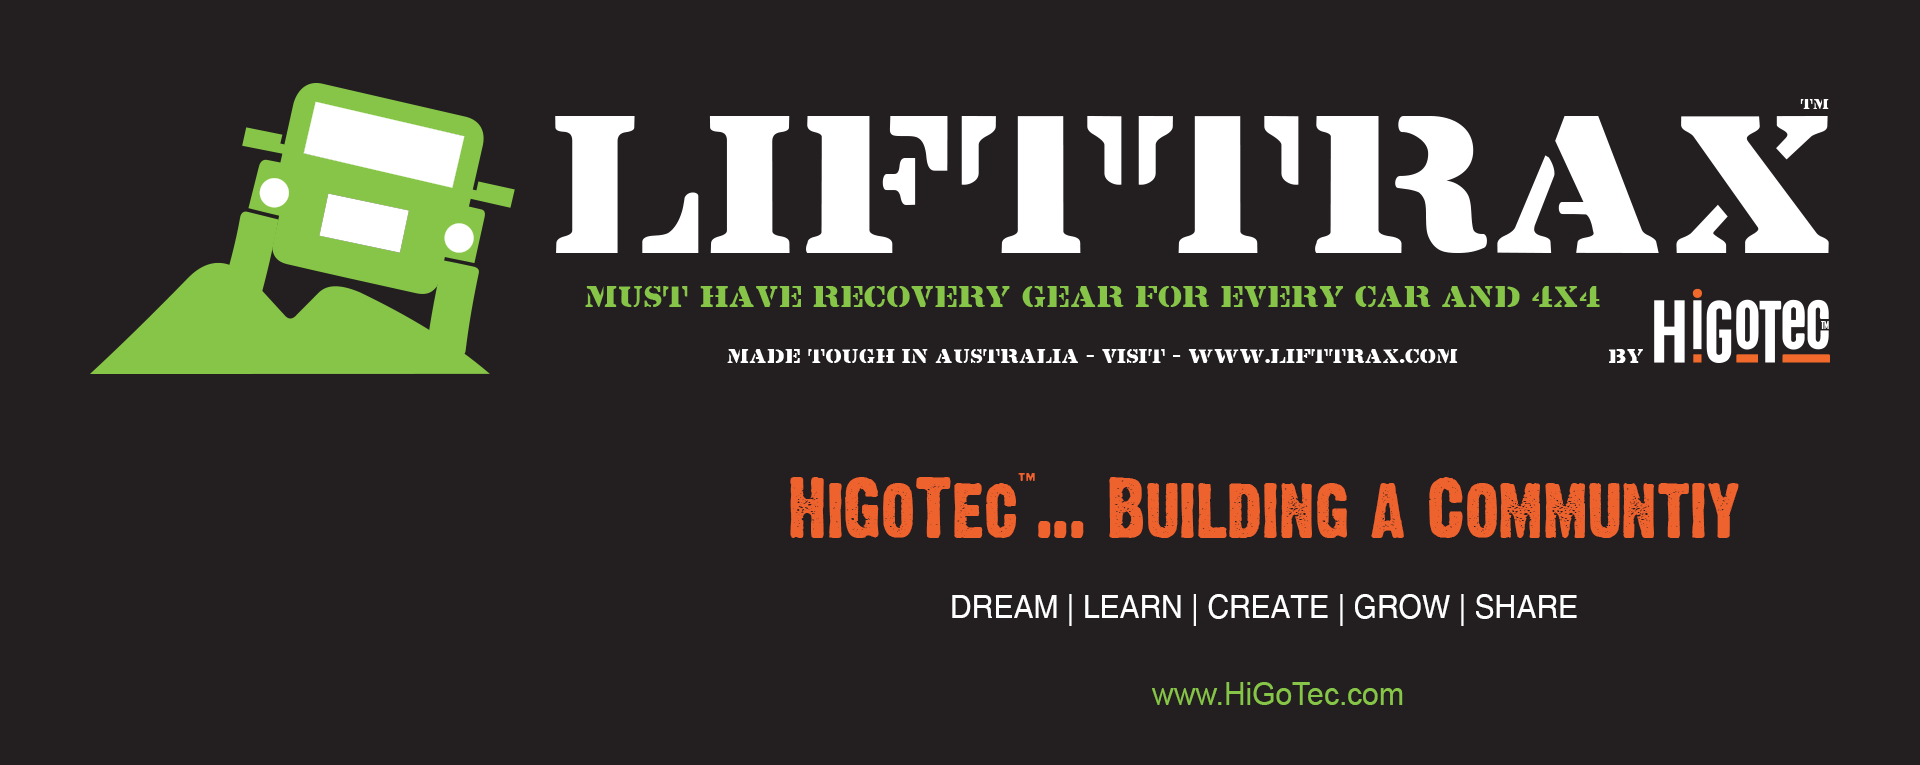 HiGoTec<sup>™</sup> building a community